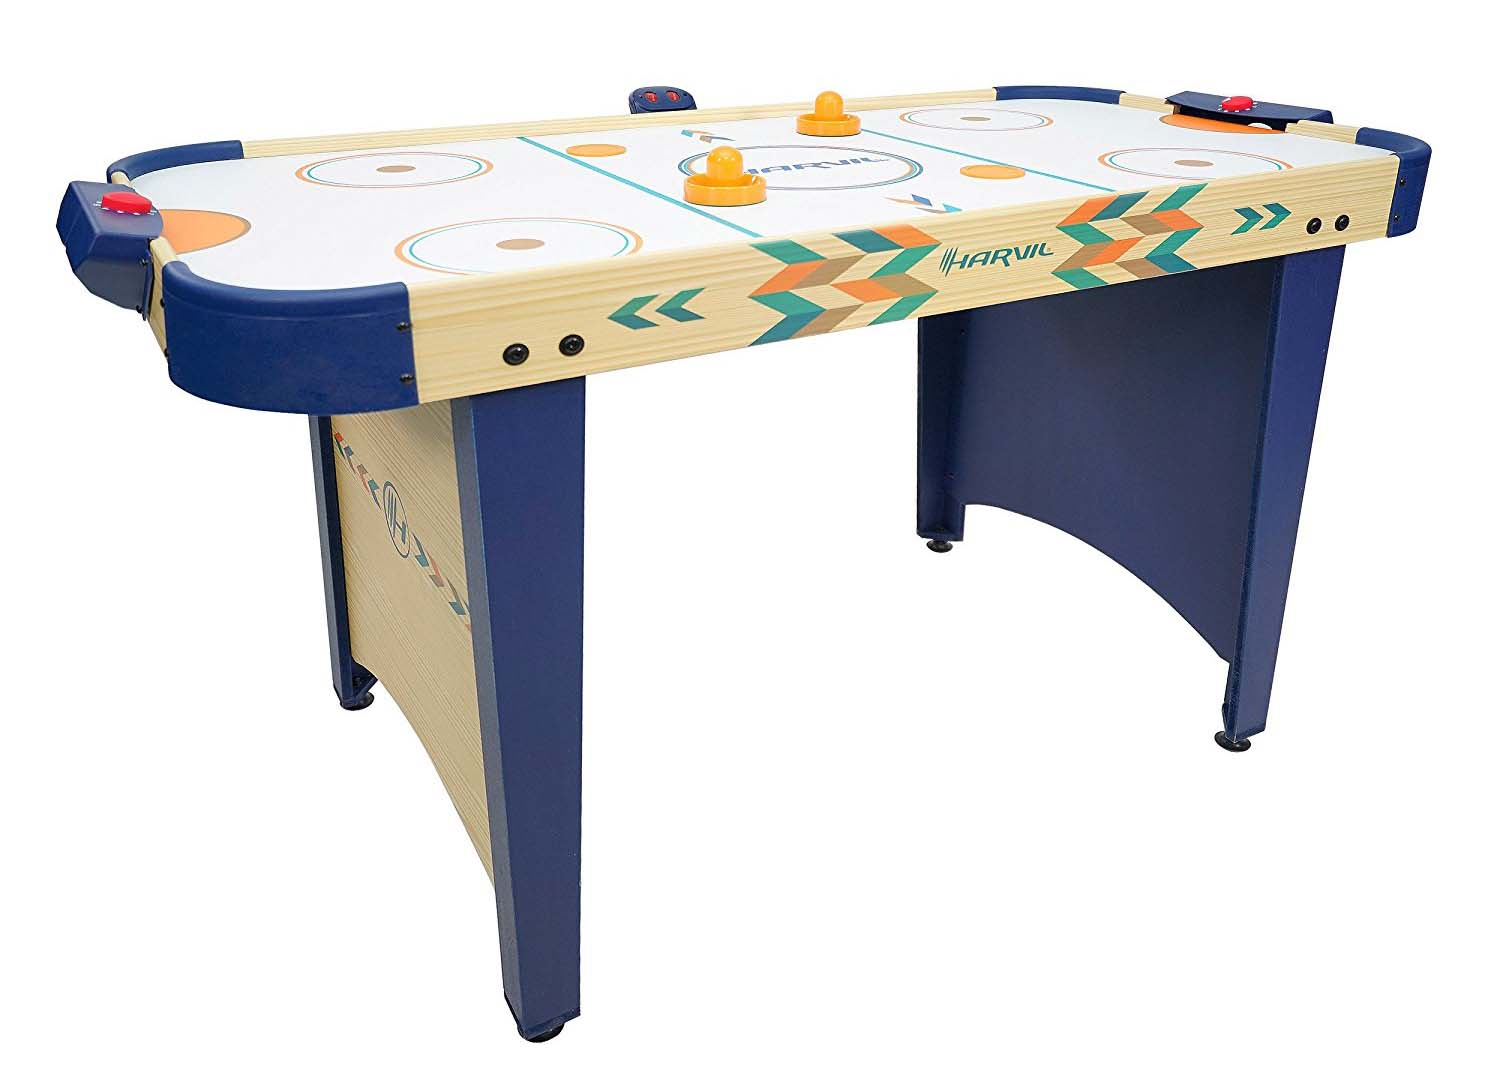 Harvil 4 Foot Air Hockey Game Table For Kids